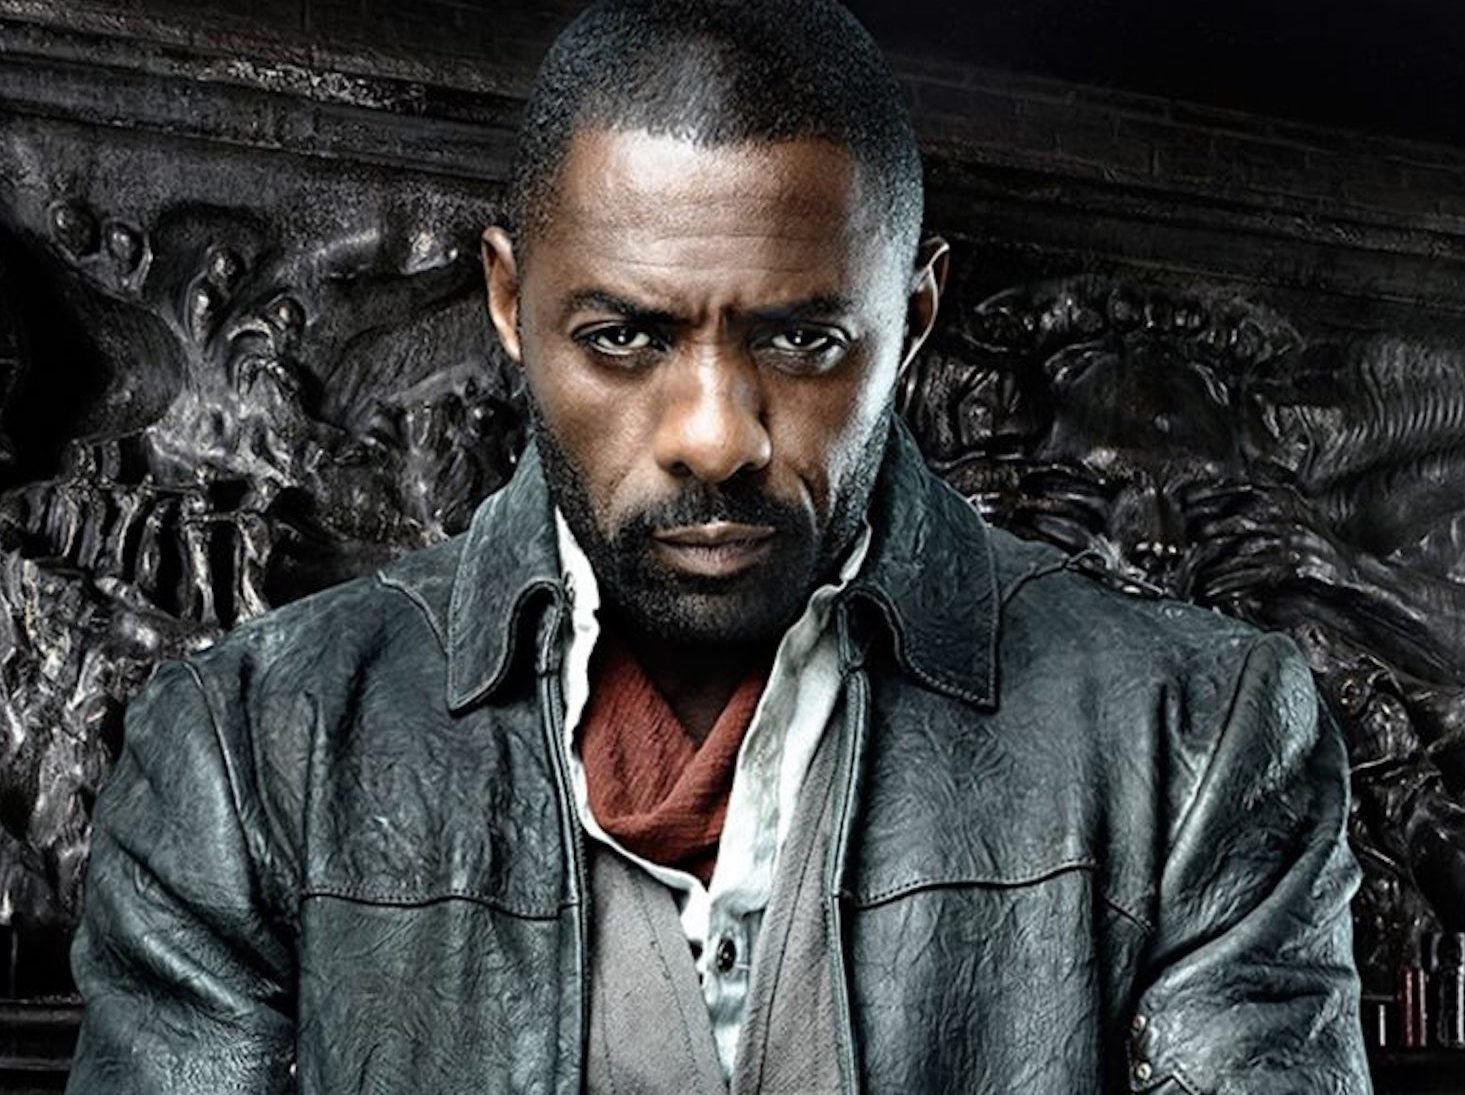 anglo 2000x1125 idriselba gunslinger e1615458417465 25 Unpopular Casting Choices That Actually Turned Out Great